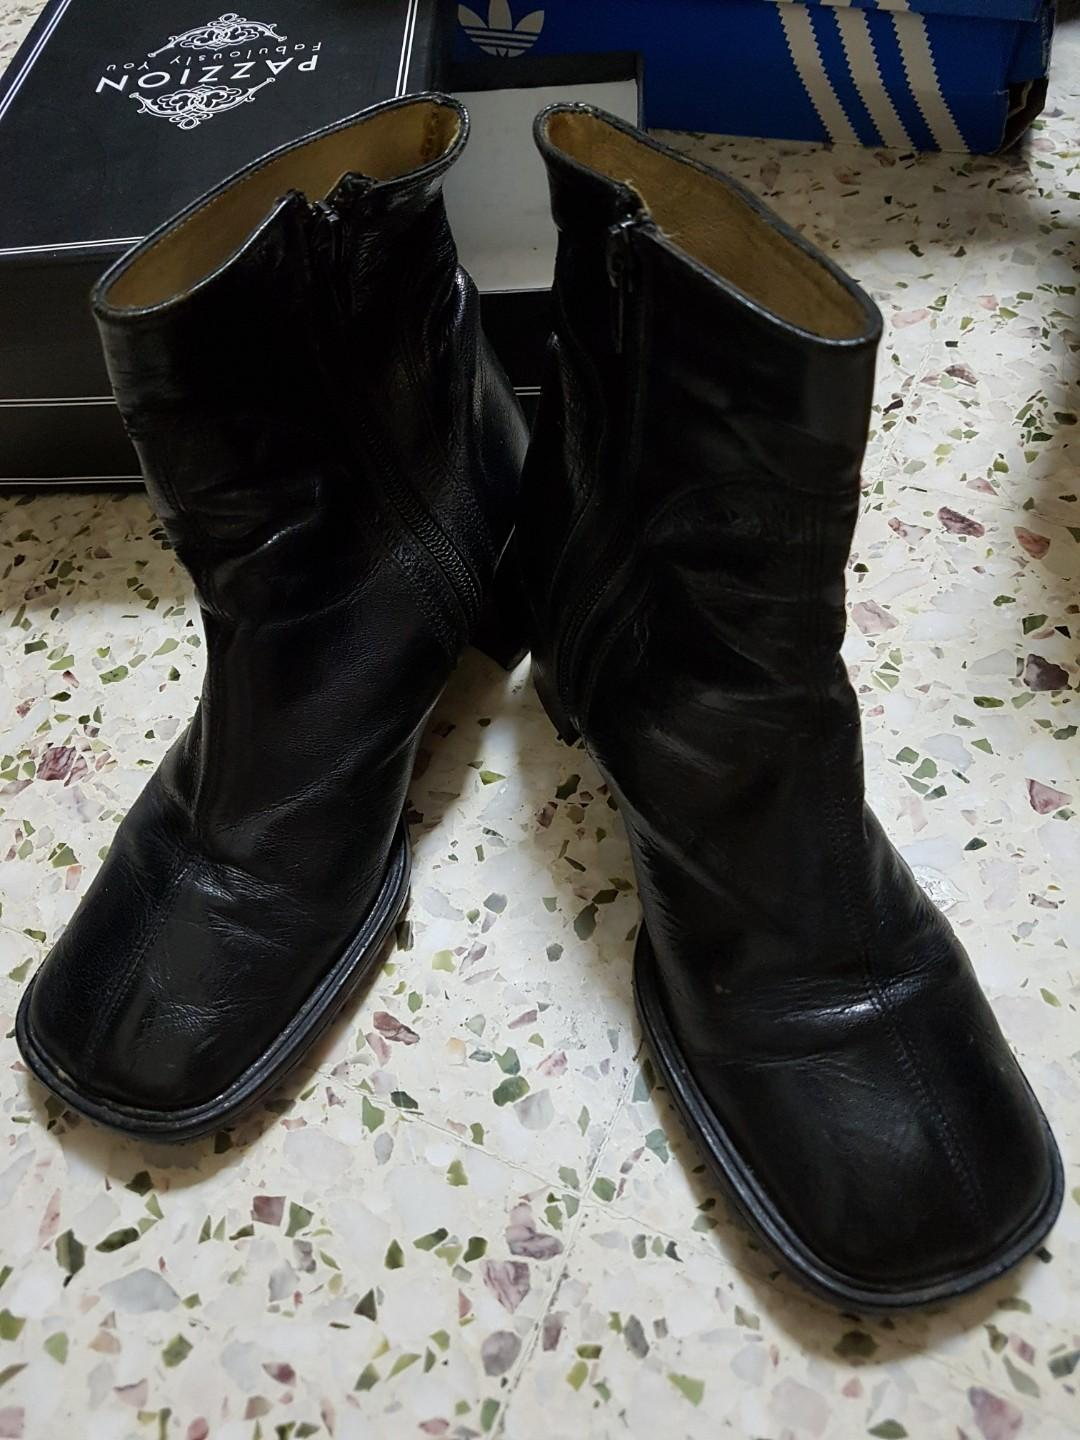 Preloved leather Black Boots SIZE 37